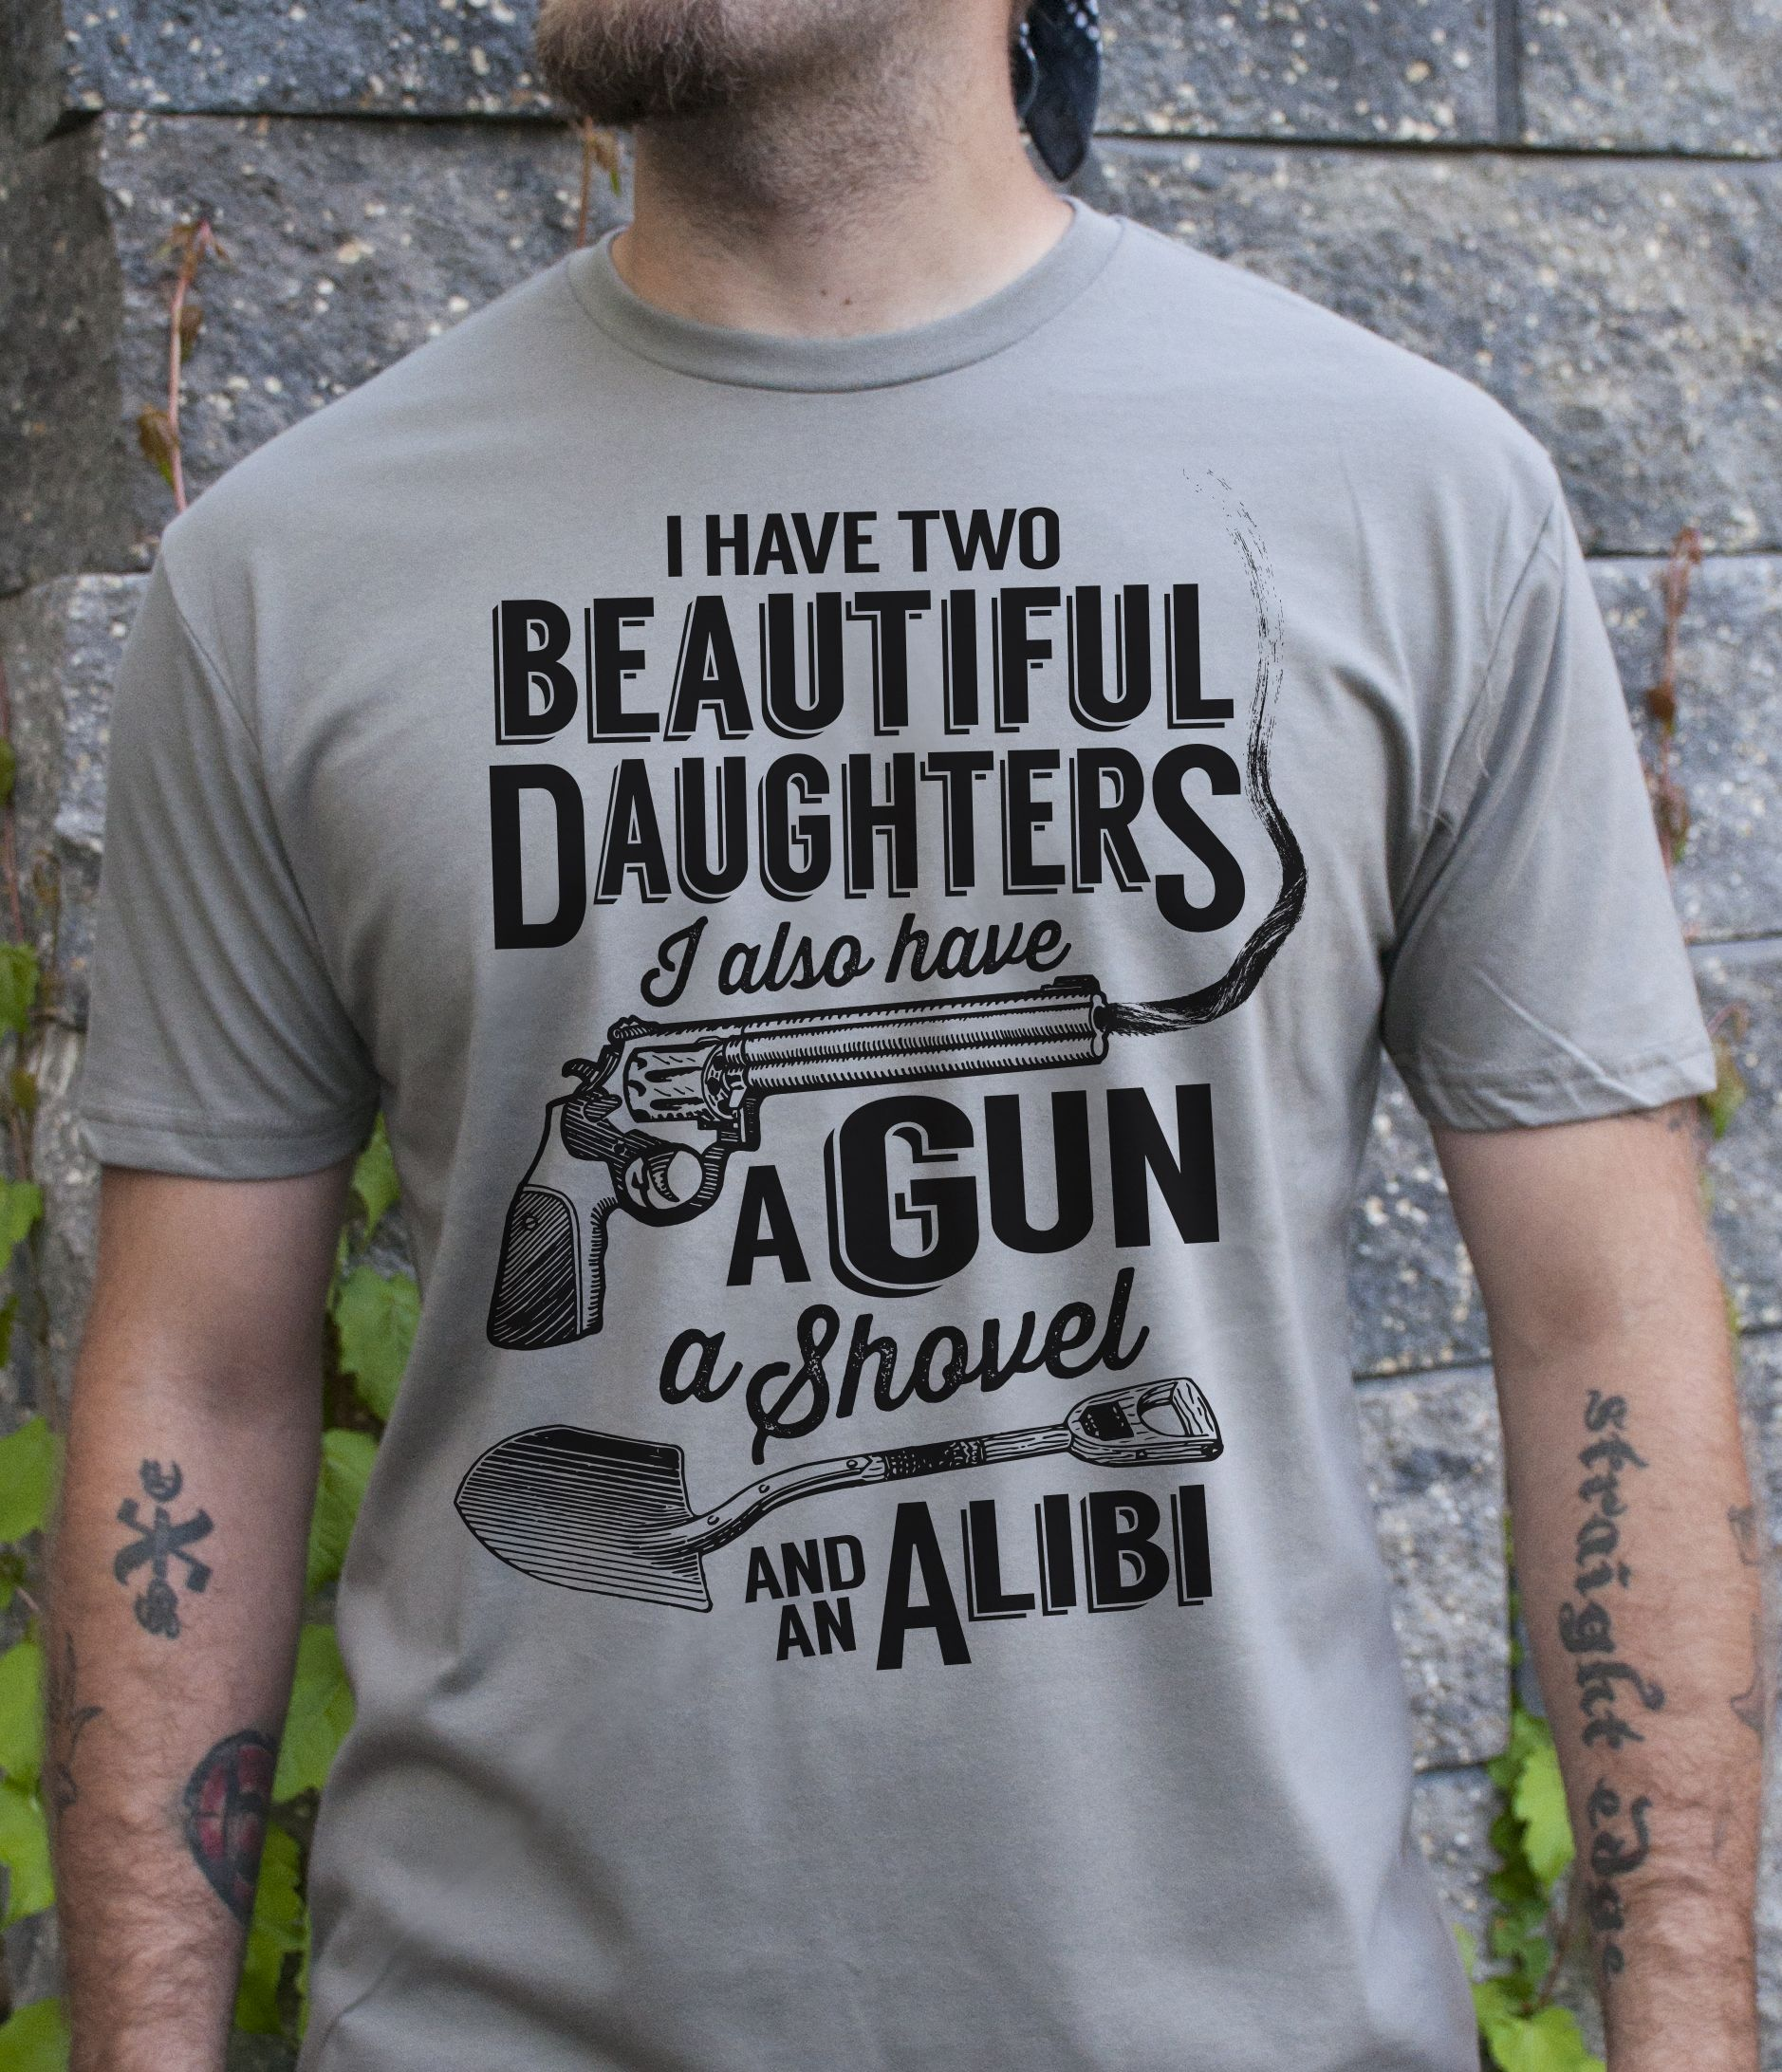 a1af0906 I Have TWO Beautiful Daughters. I also have a Gun, A Shovel, and an Alibi -  men's/unisex t-shirt in warm gray